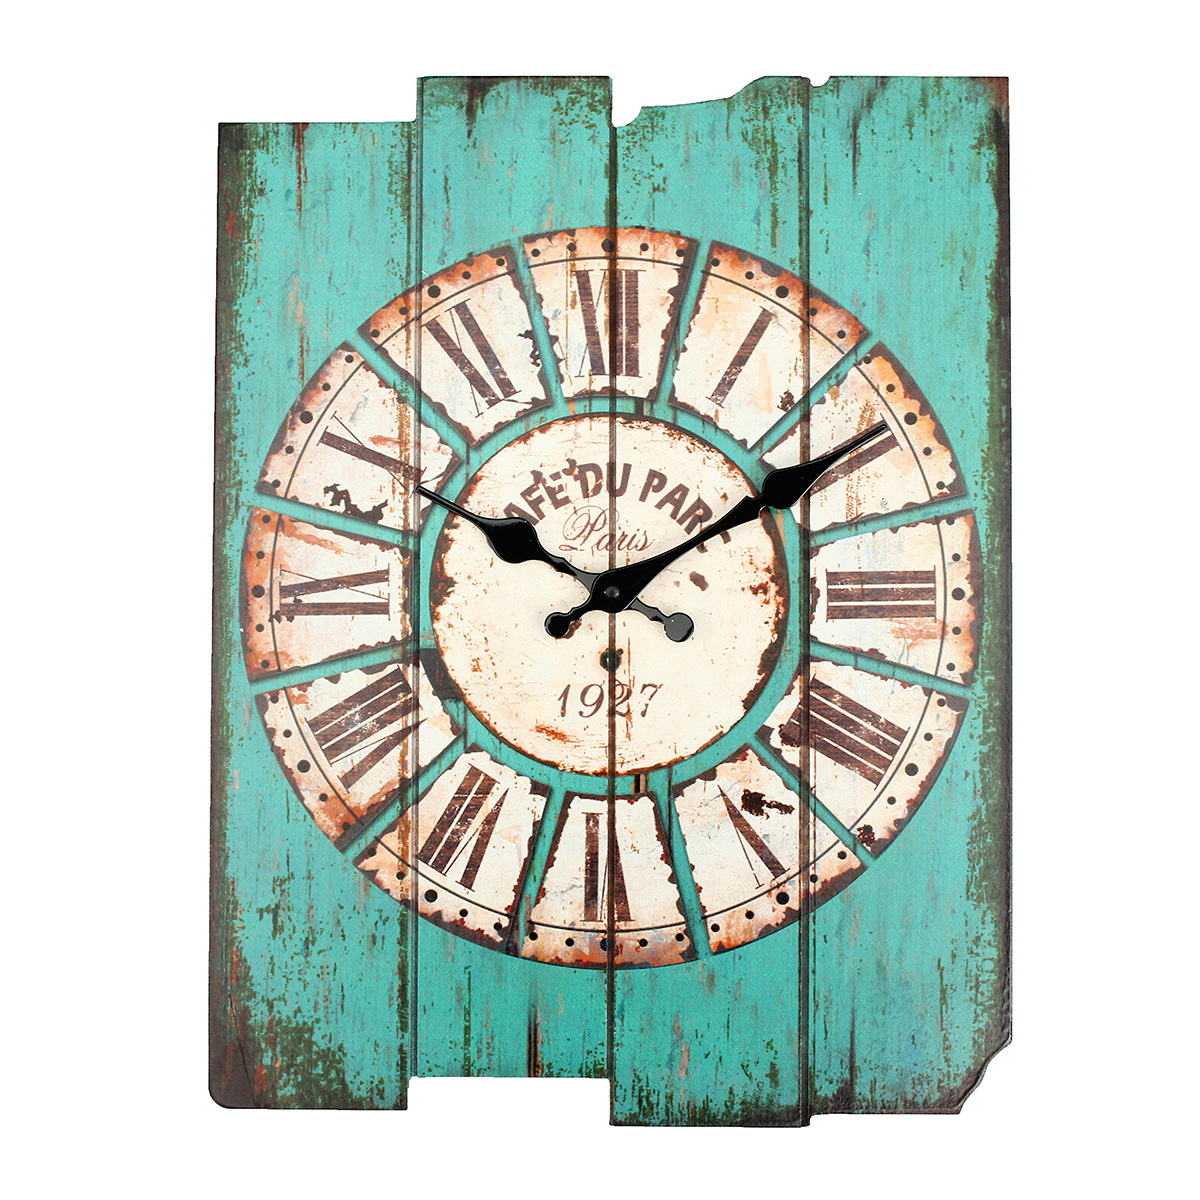 Large Vintage Antique Rustic Shabby Chic Wall Clock Home